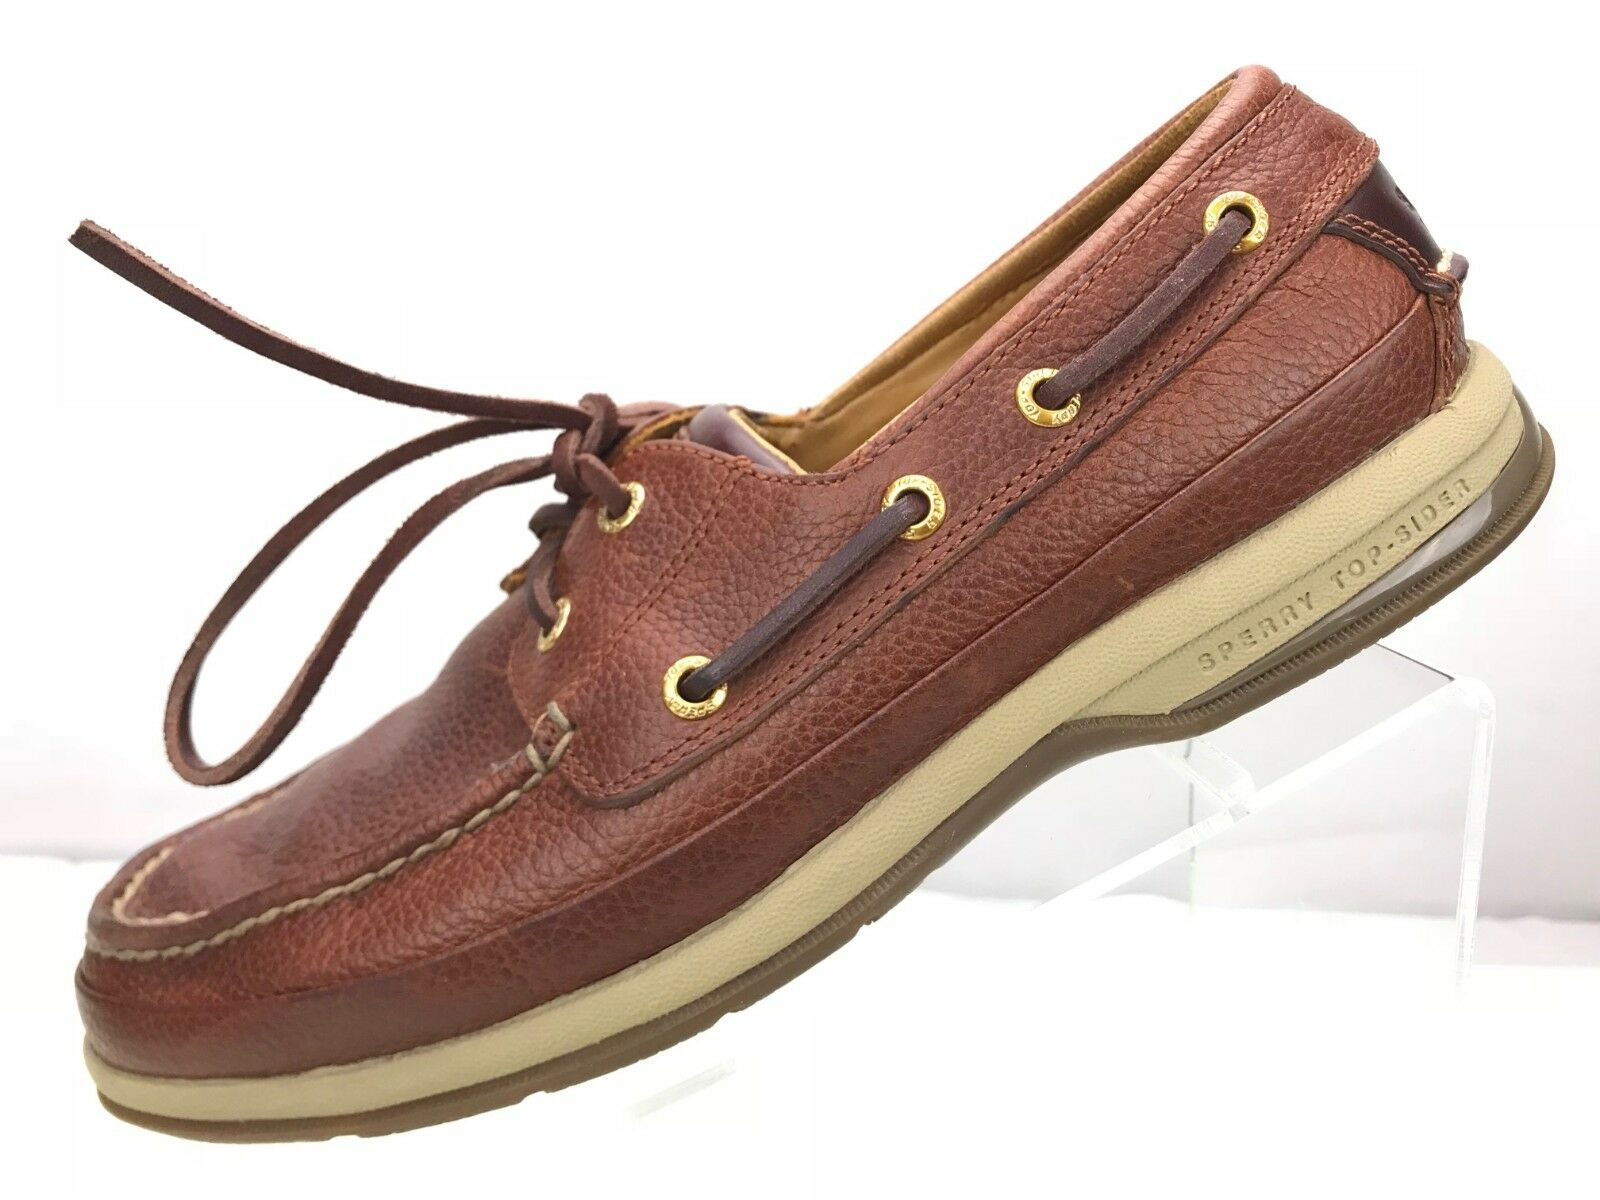 Sperry Top Sider gold Cup Boat shoes - Brown Leather Rubber Sole Men's Sz 8M